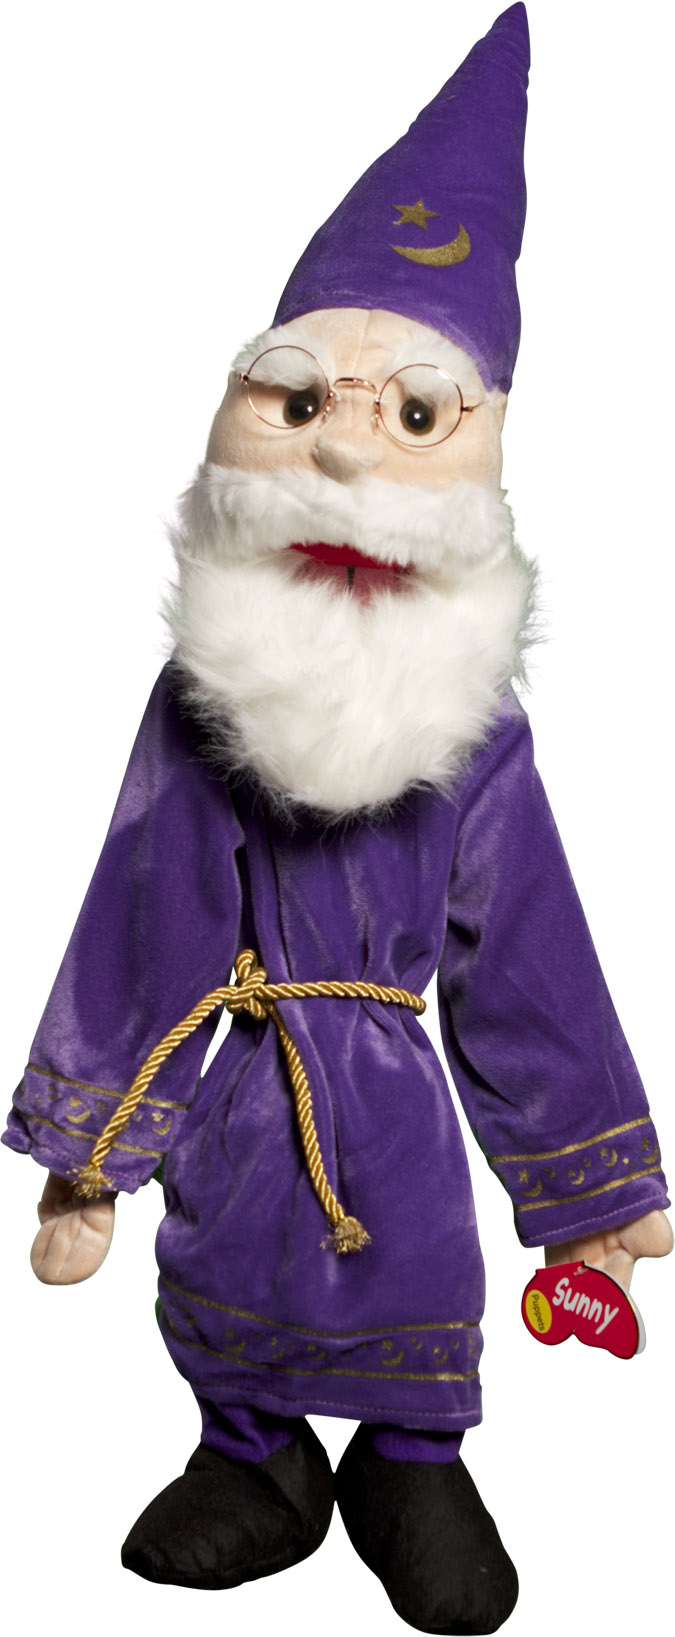 Sunny Toys GS4902 28 In. Wizard, Fully Body Puppet by Sunny Toys